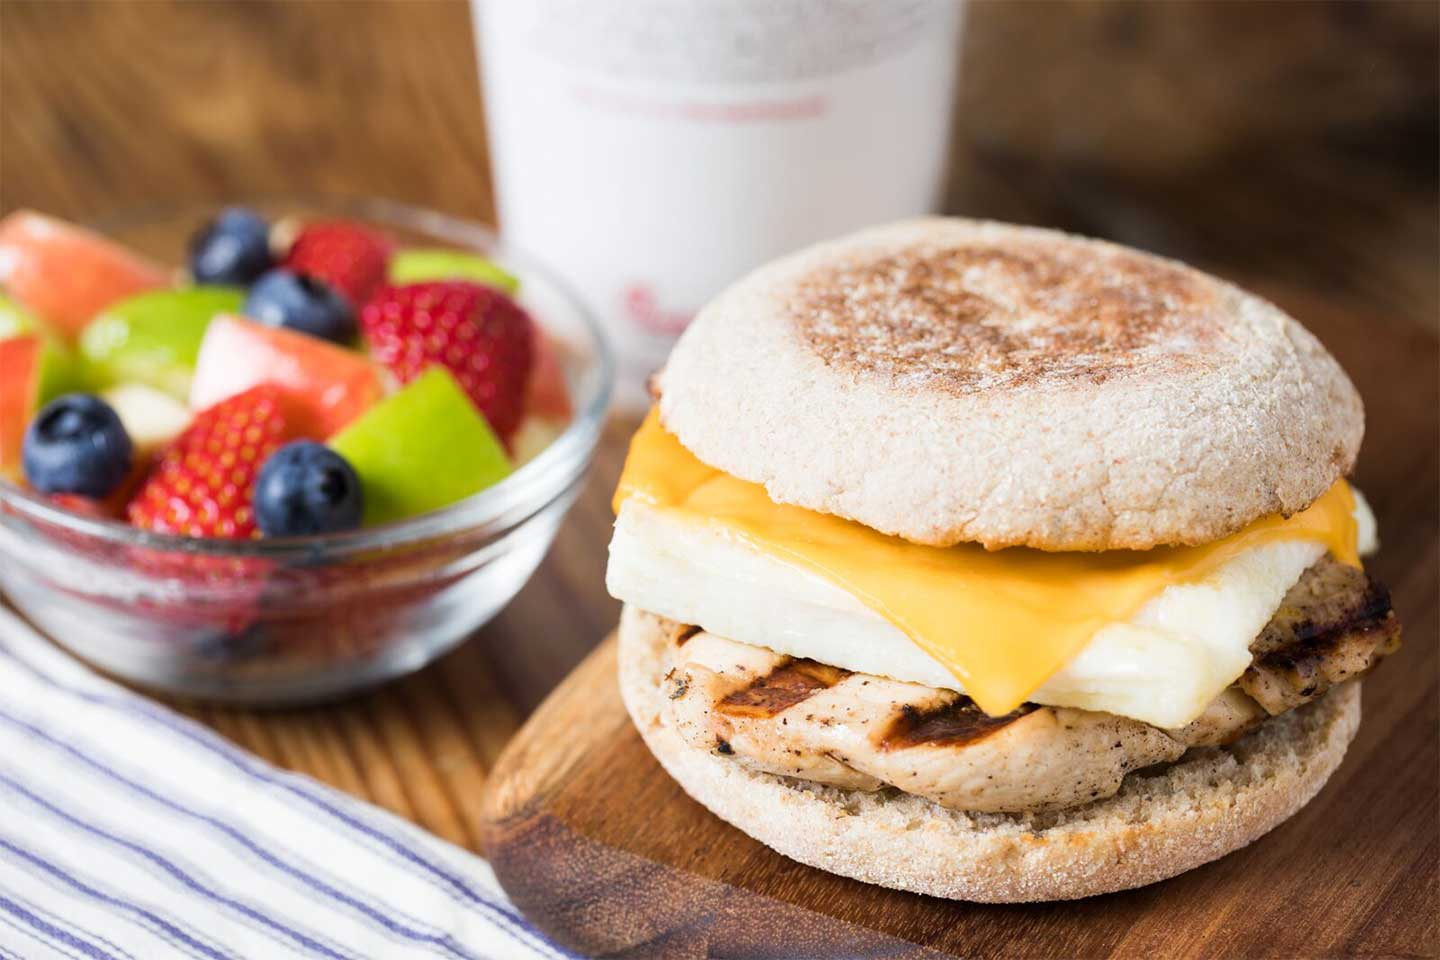 10 Chick Fil A Breakfasts Under 400 Calories Chick Fil A